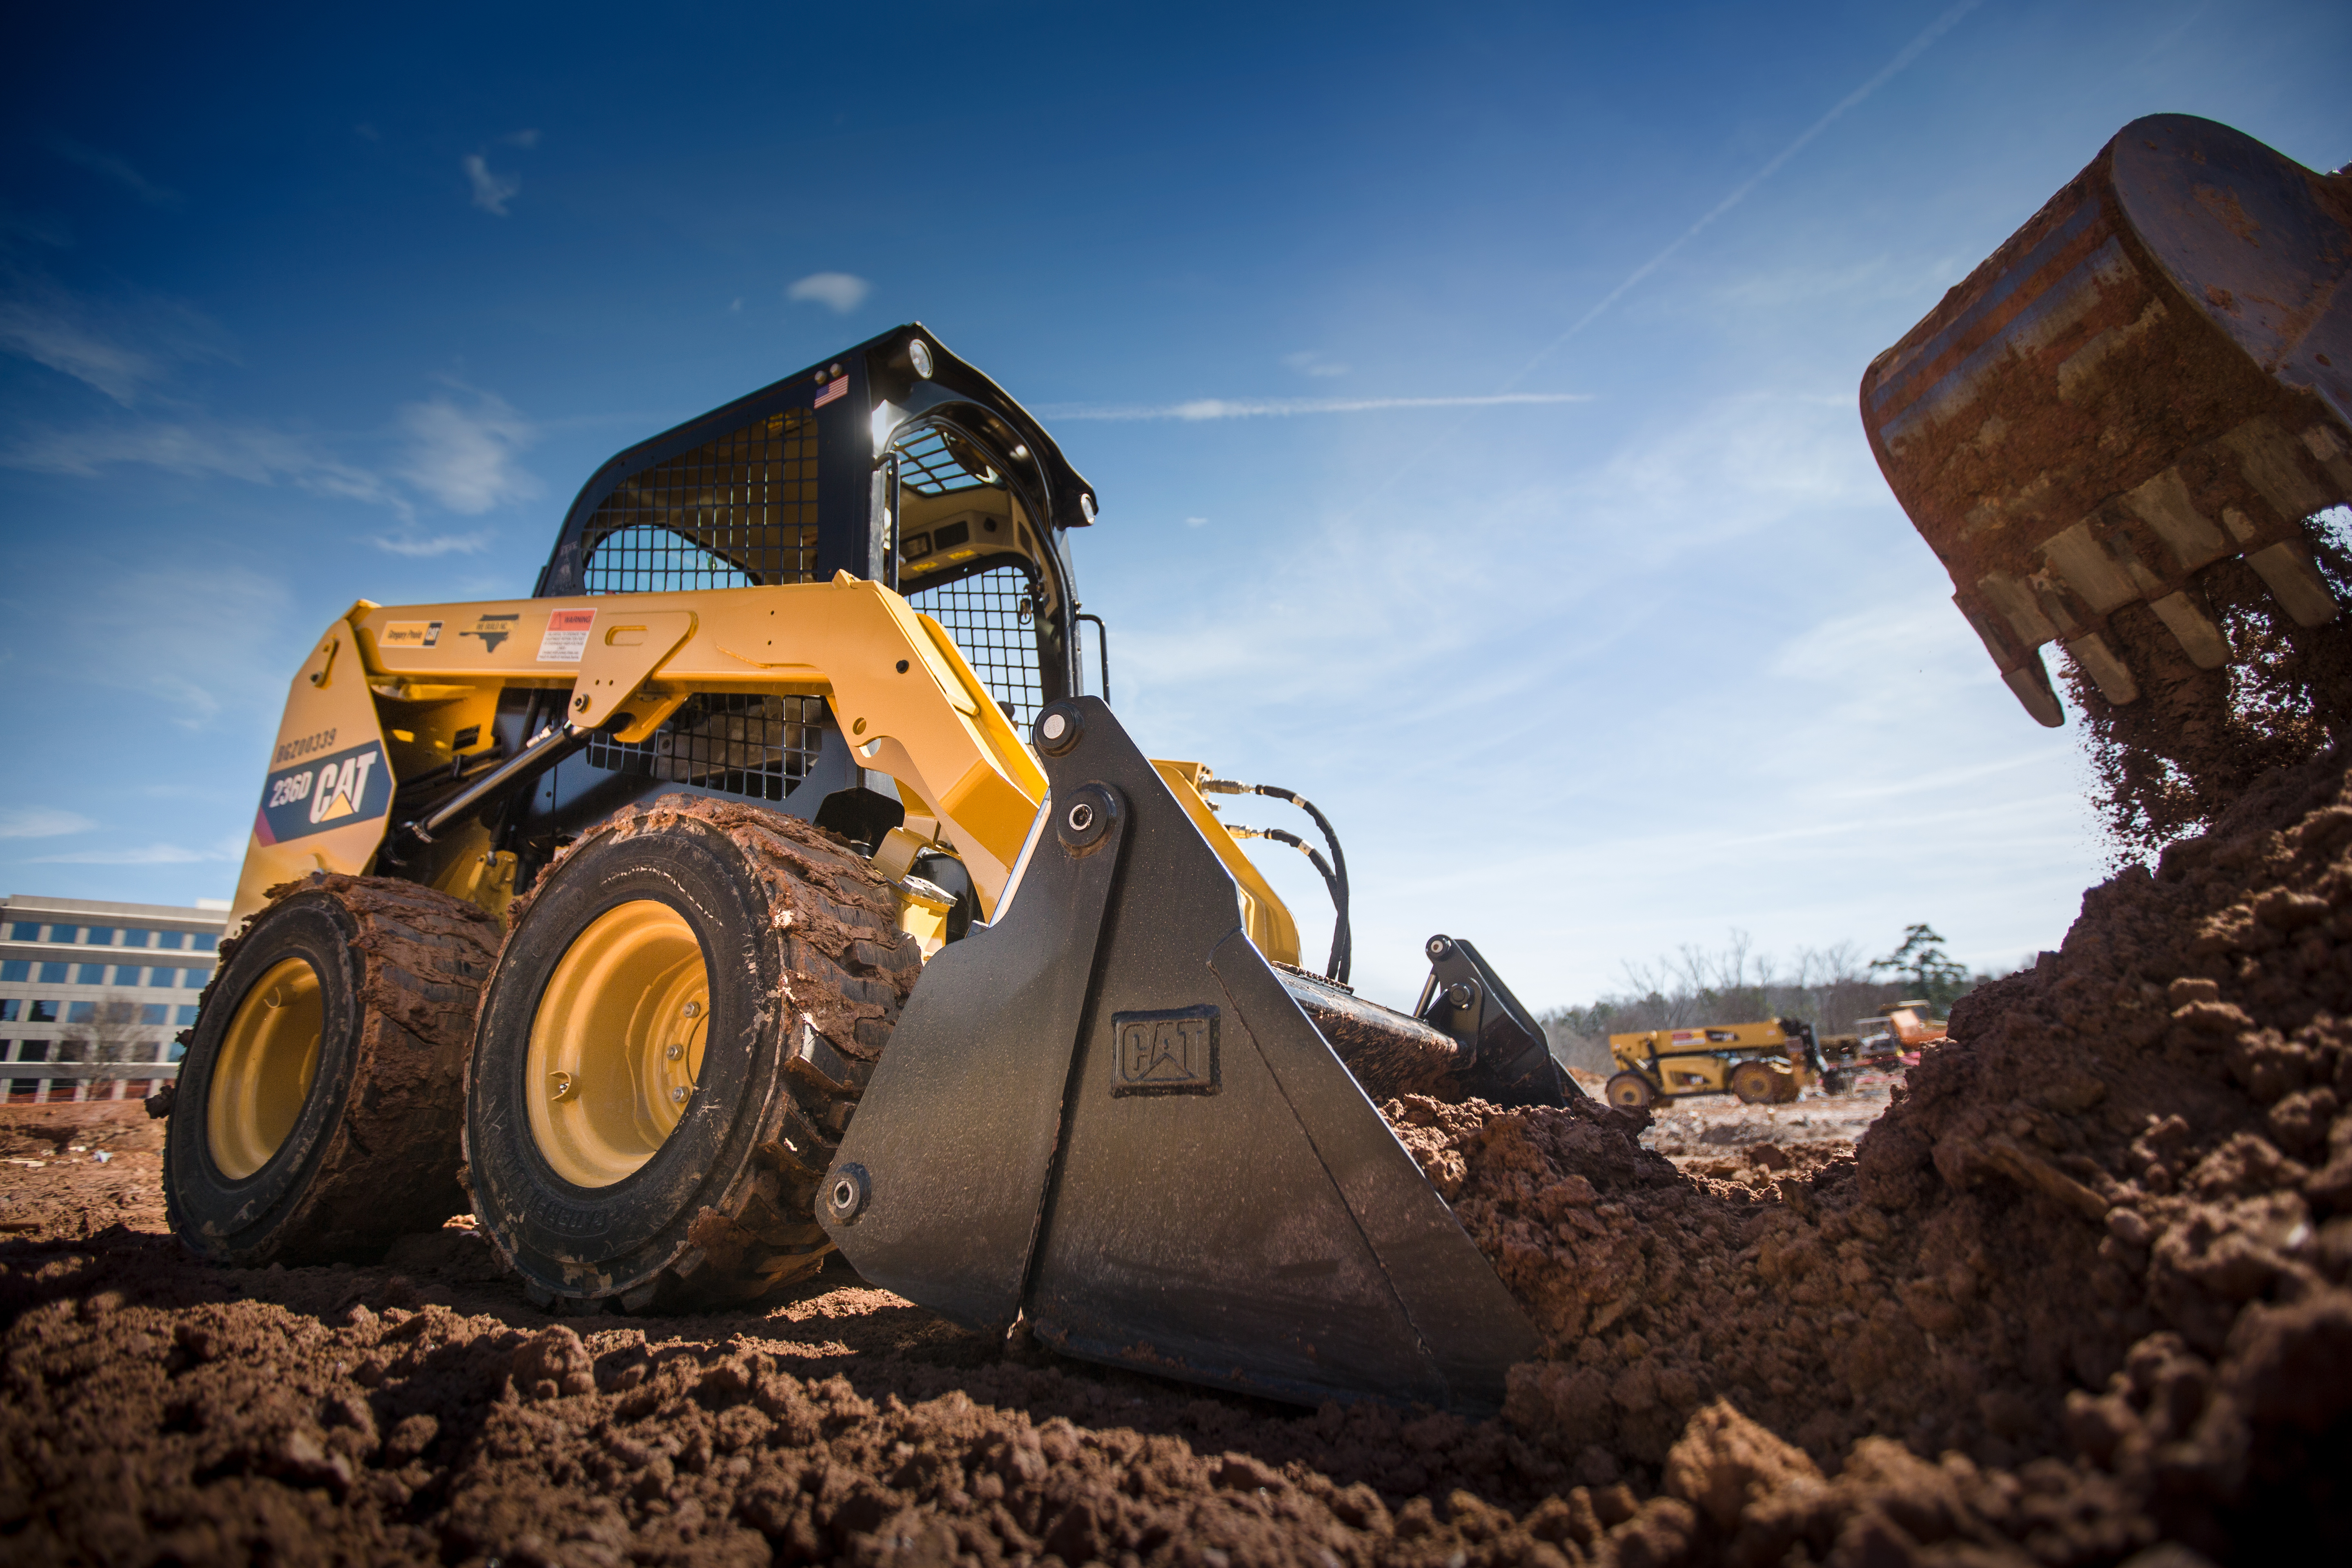 Caterpillar is introducing a new tier of repair and replacement parts